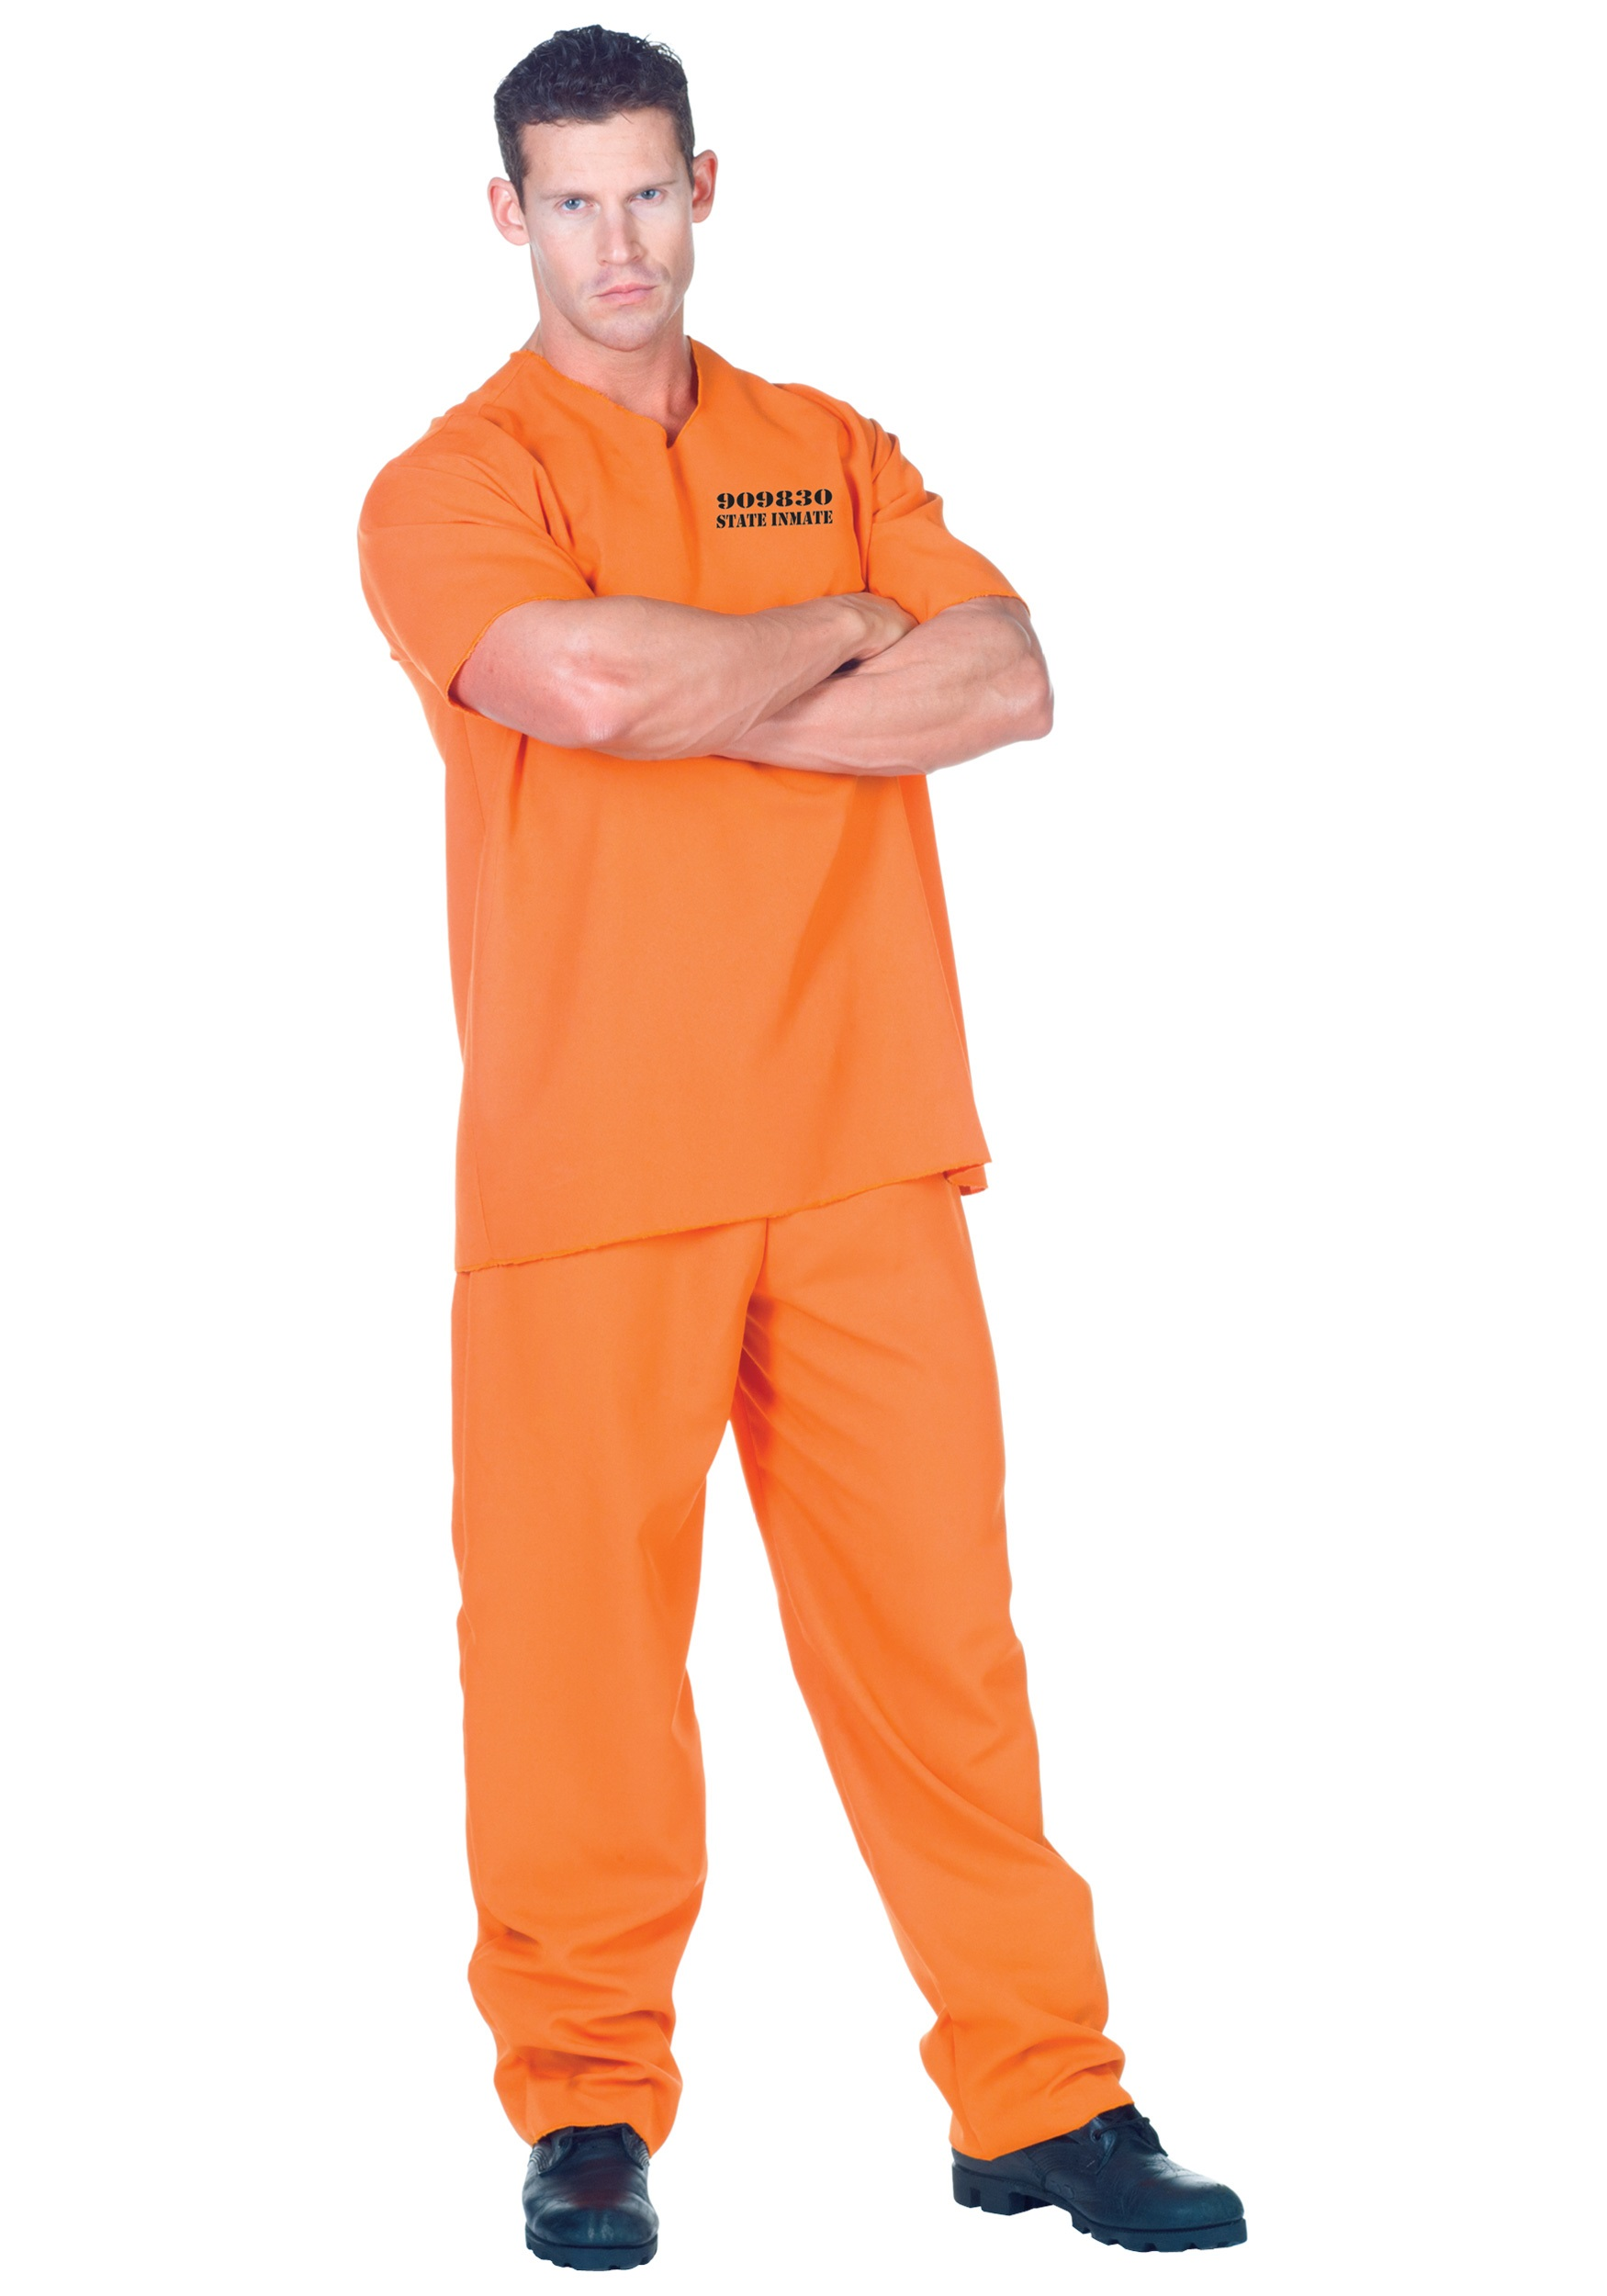 Public Offender Inmate Costume for Men